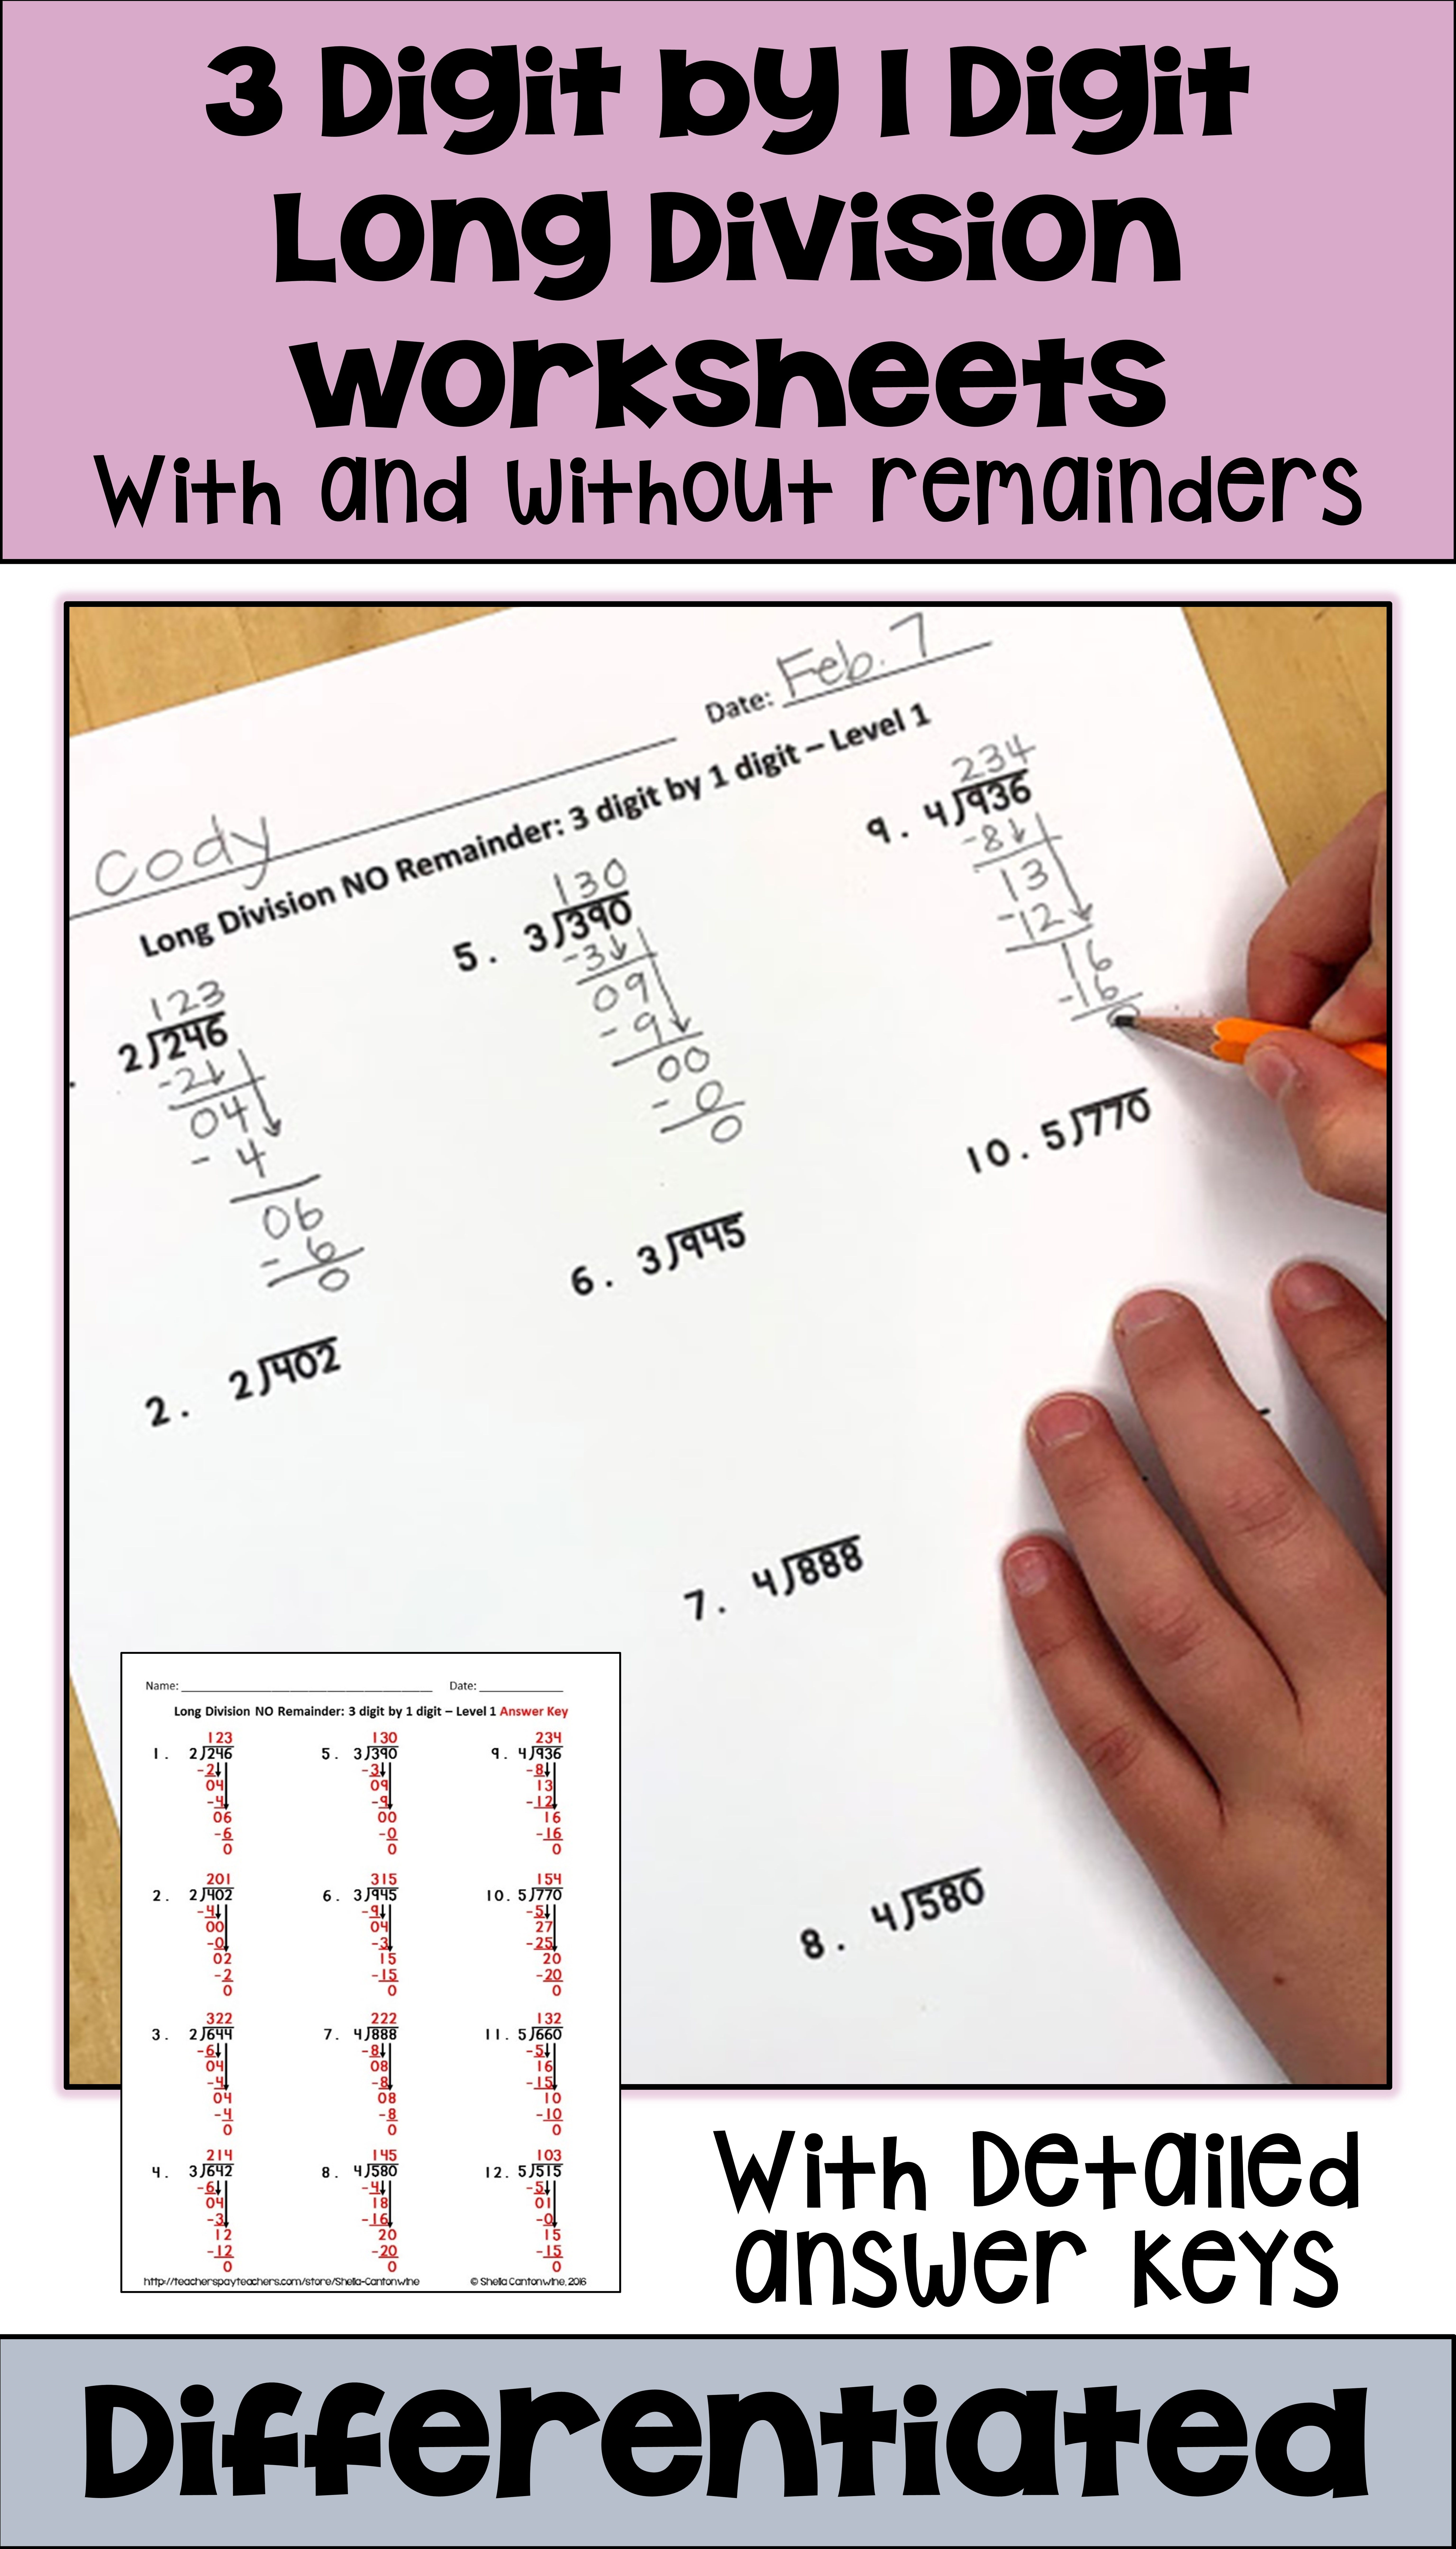 Long Division Worksheets 3 Digit By 1 Digit